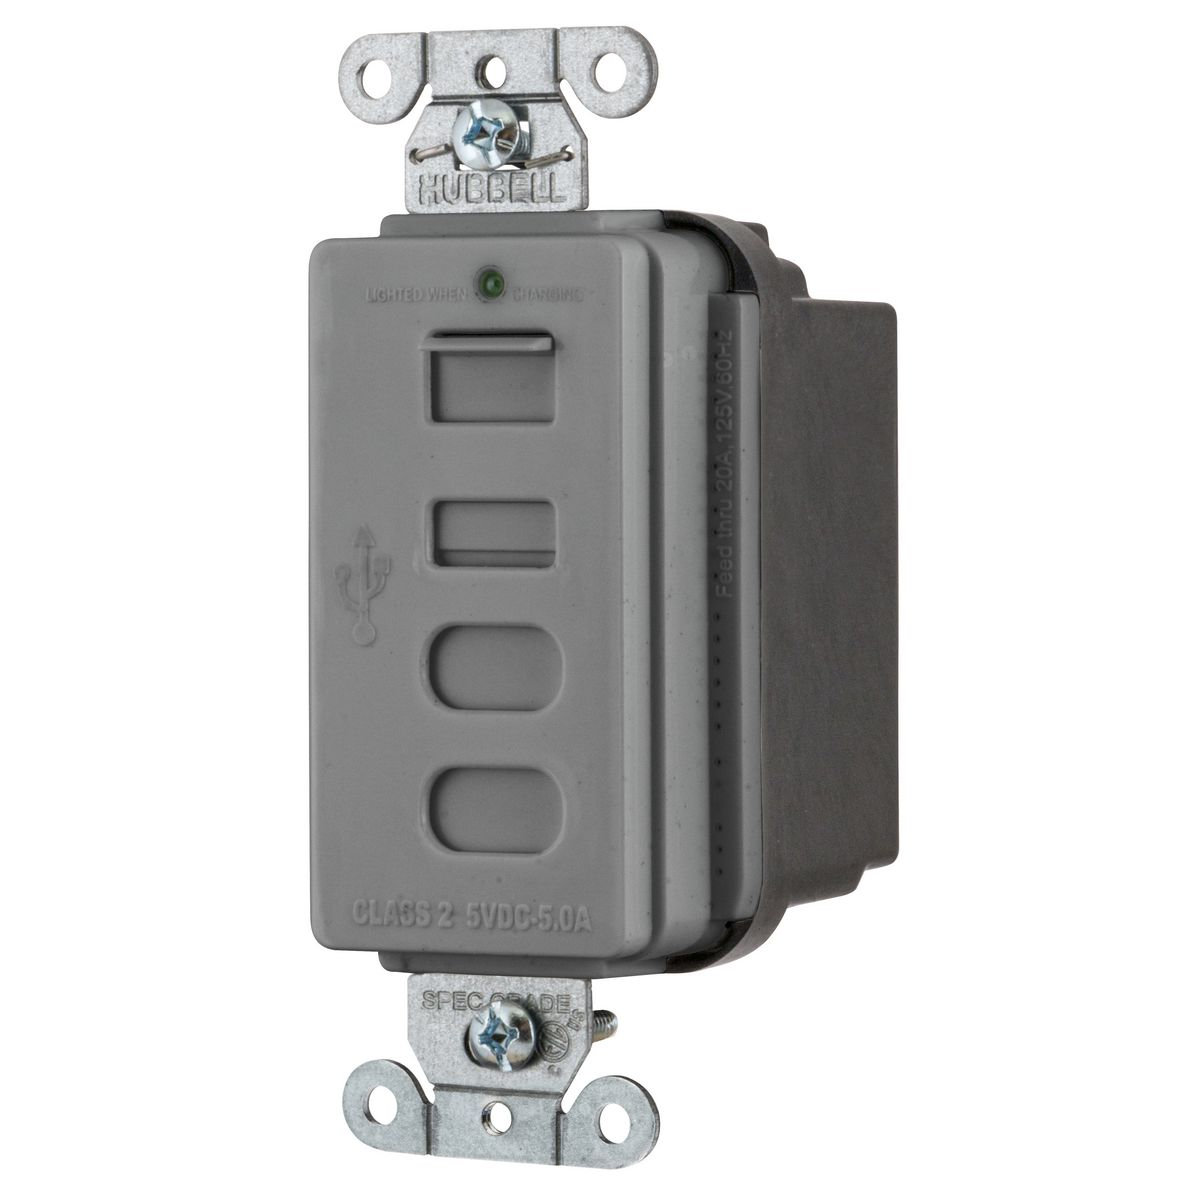 Hubbell USB4ACGY Receptacle and USB Charger